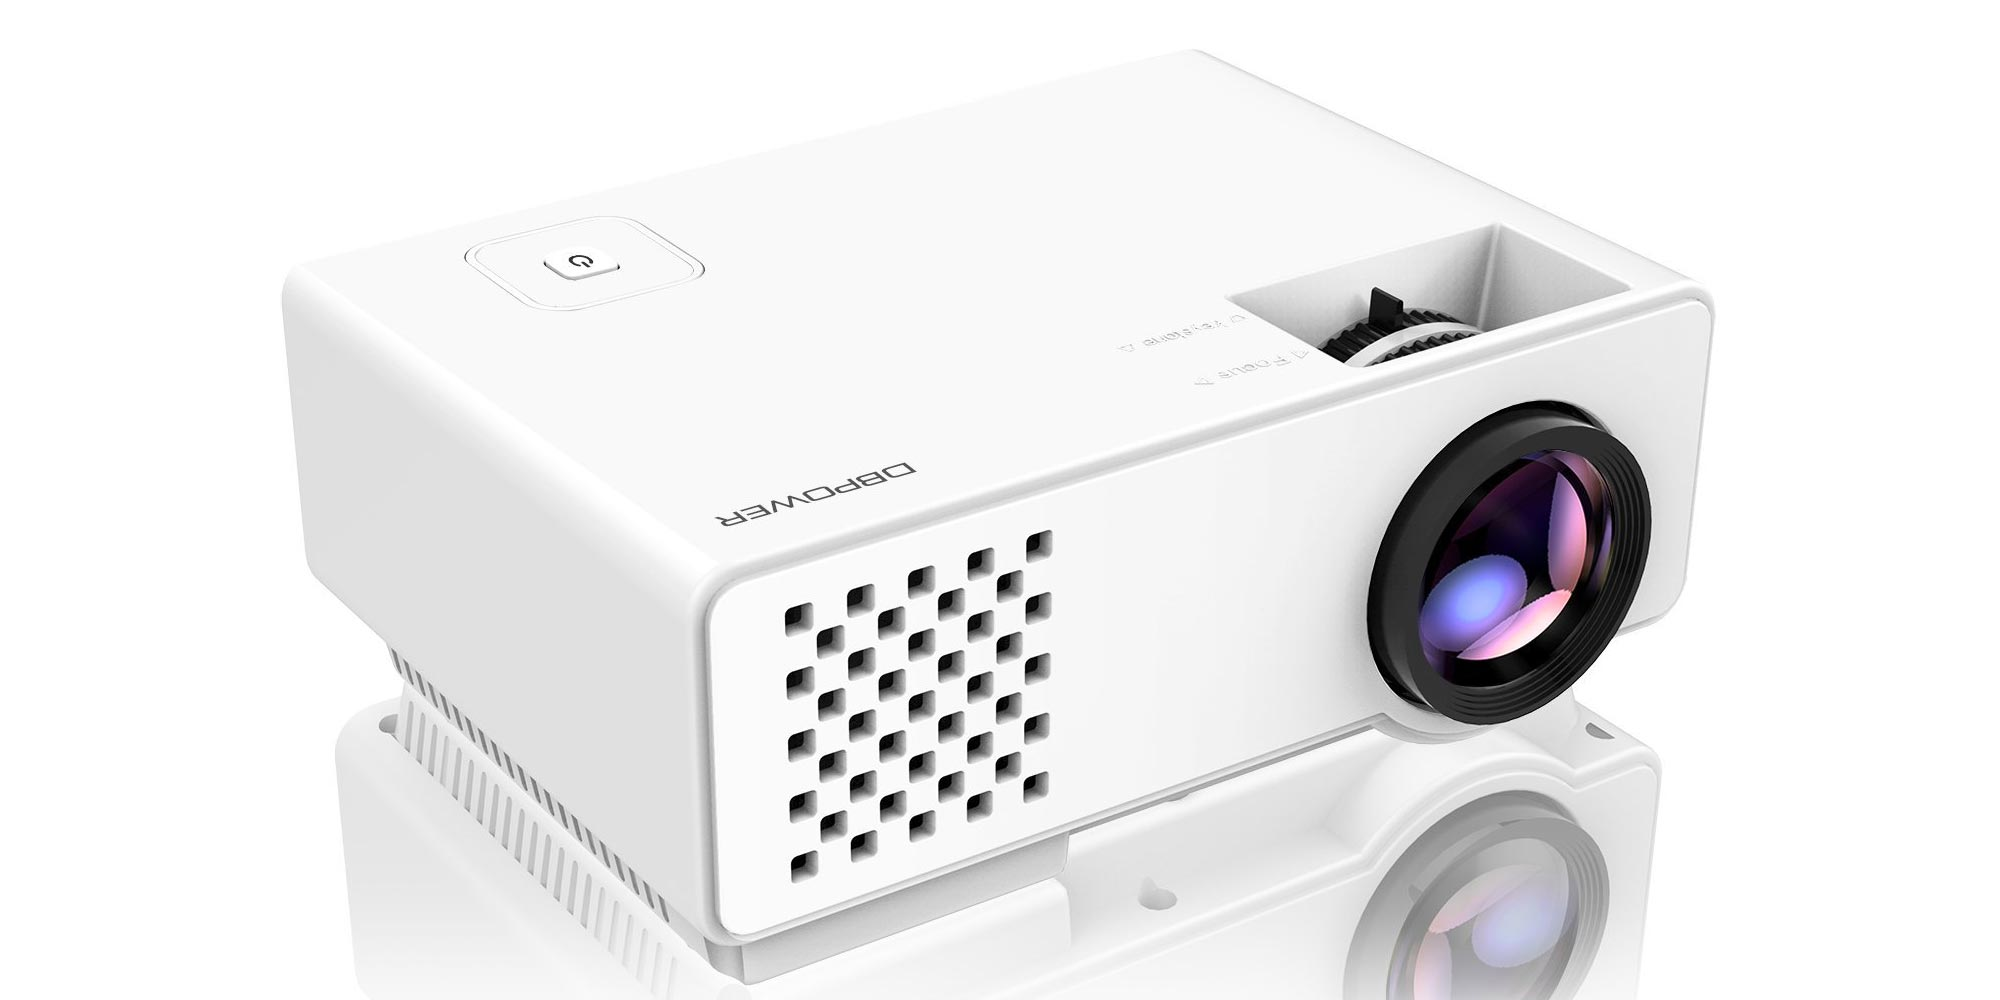 Watch 1080p movies on up to a 150-inch screen w/ this projector: $63 (Reg. $80)